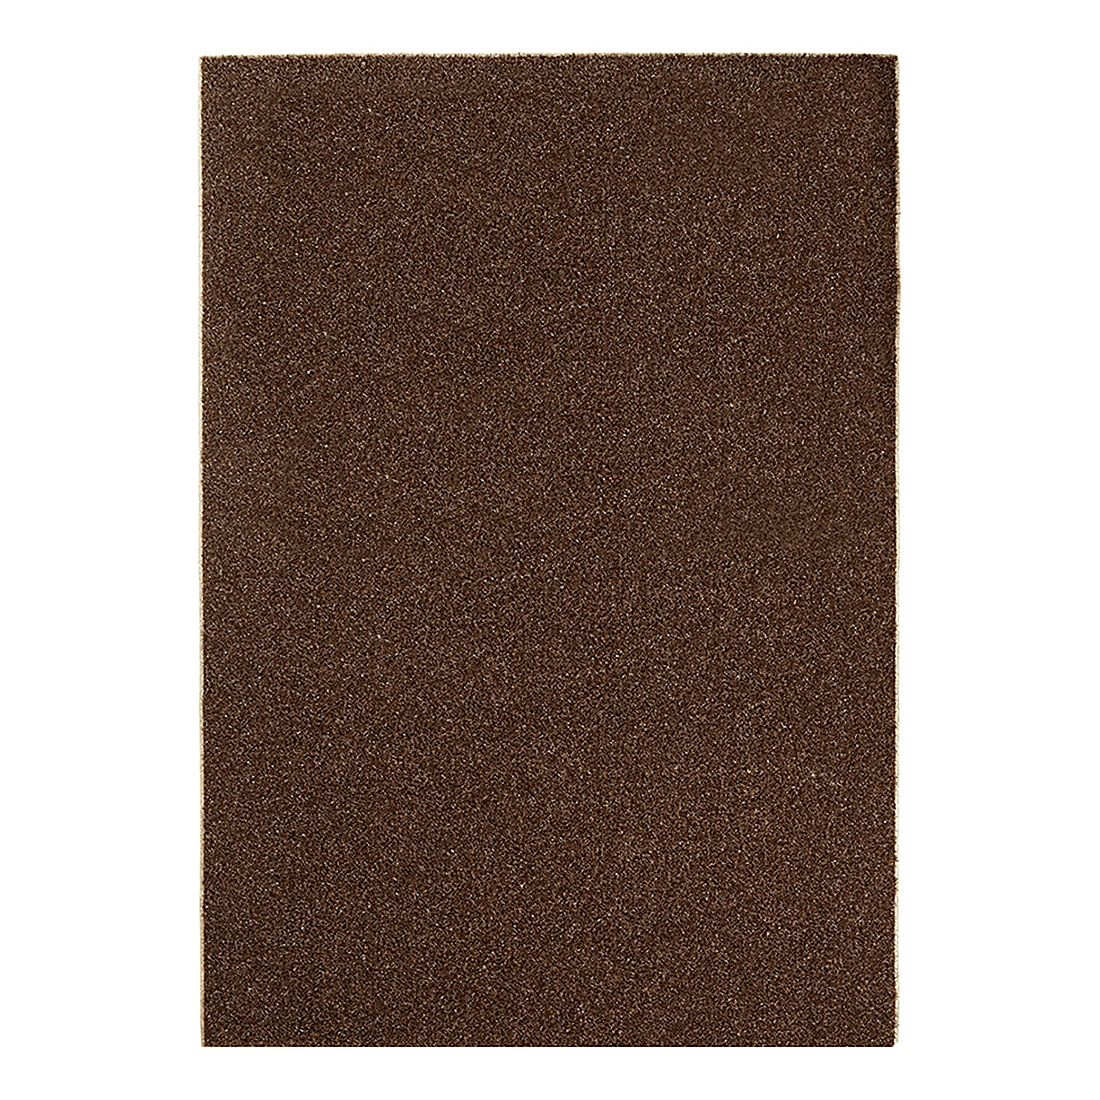 Outdoorteppich b.b Miami Style – Coconut Brown – 67 x 130 cm, barbara becker home passion jetzt kaufen